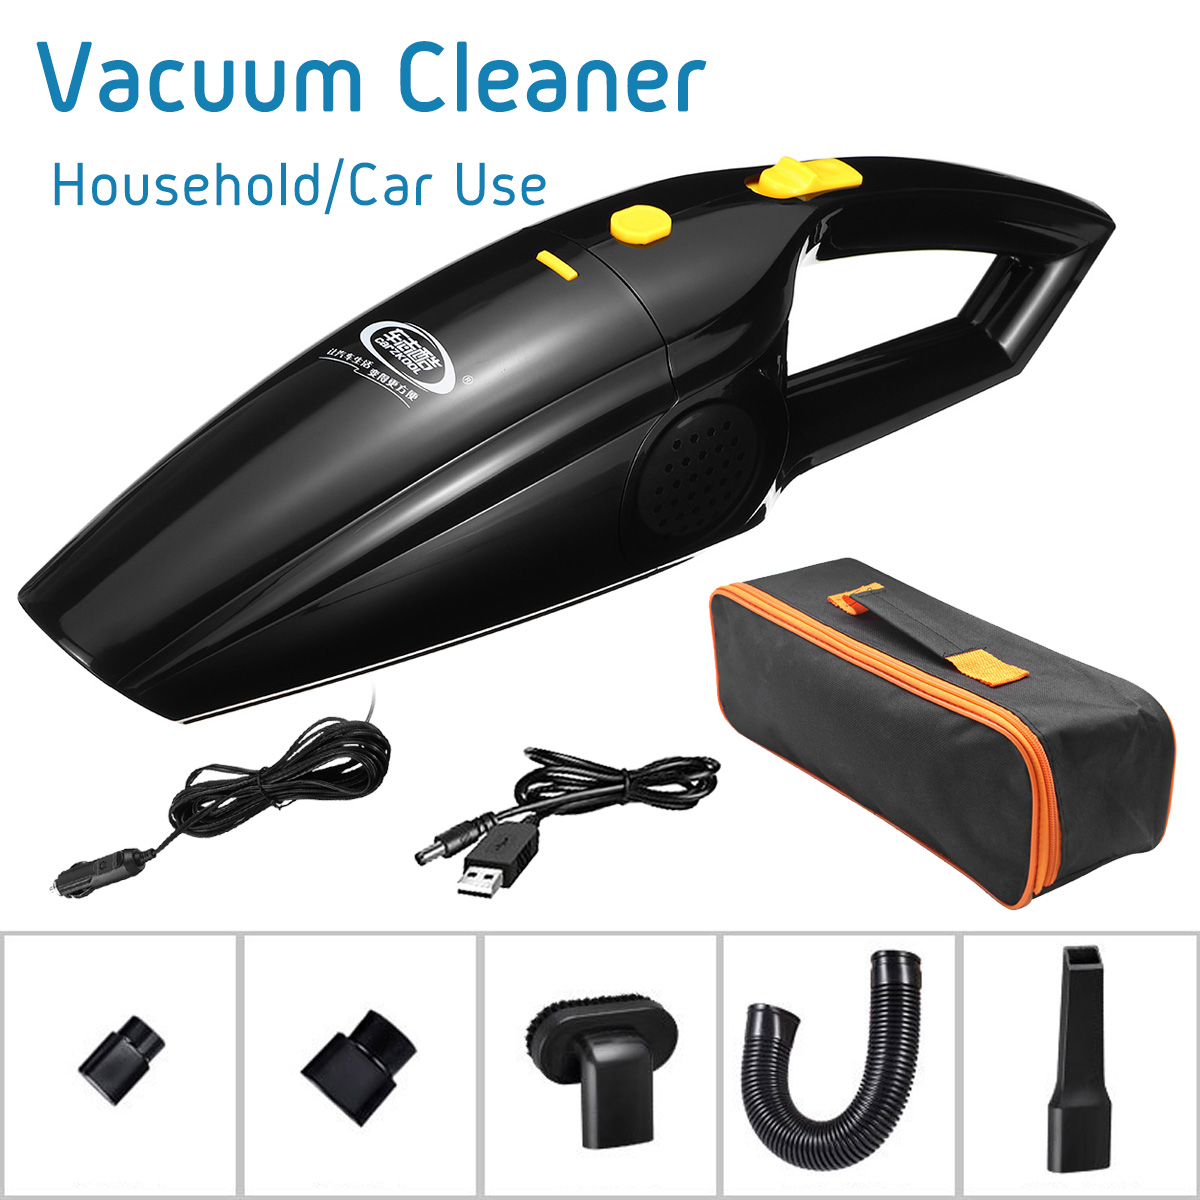 120W Handheld Portable Home Car Vacuum Cleaner Cordless Cord Wet And Dry Dual Use Auto Vacuum Asur With Carrying Bag